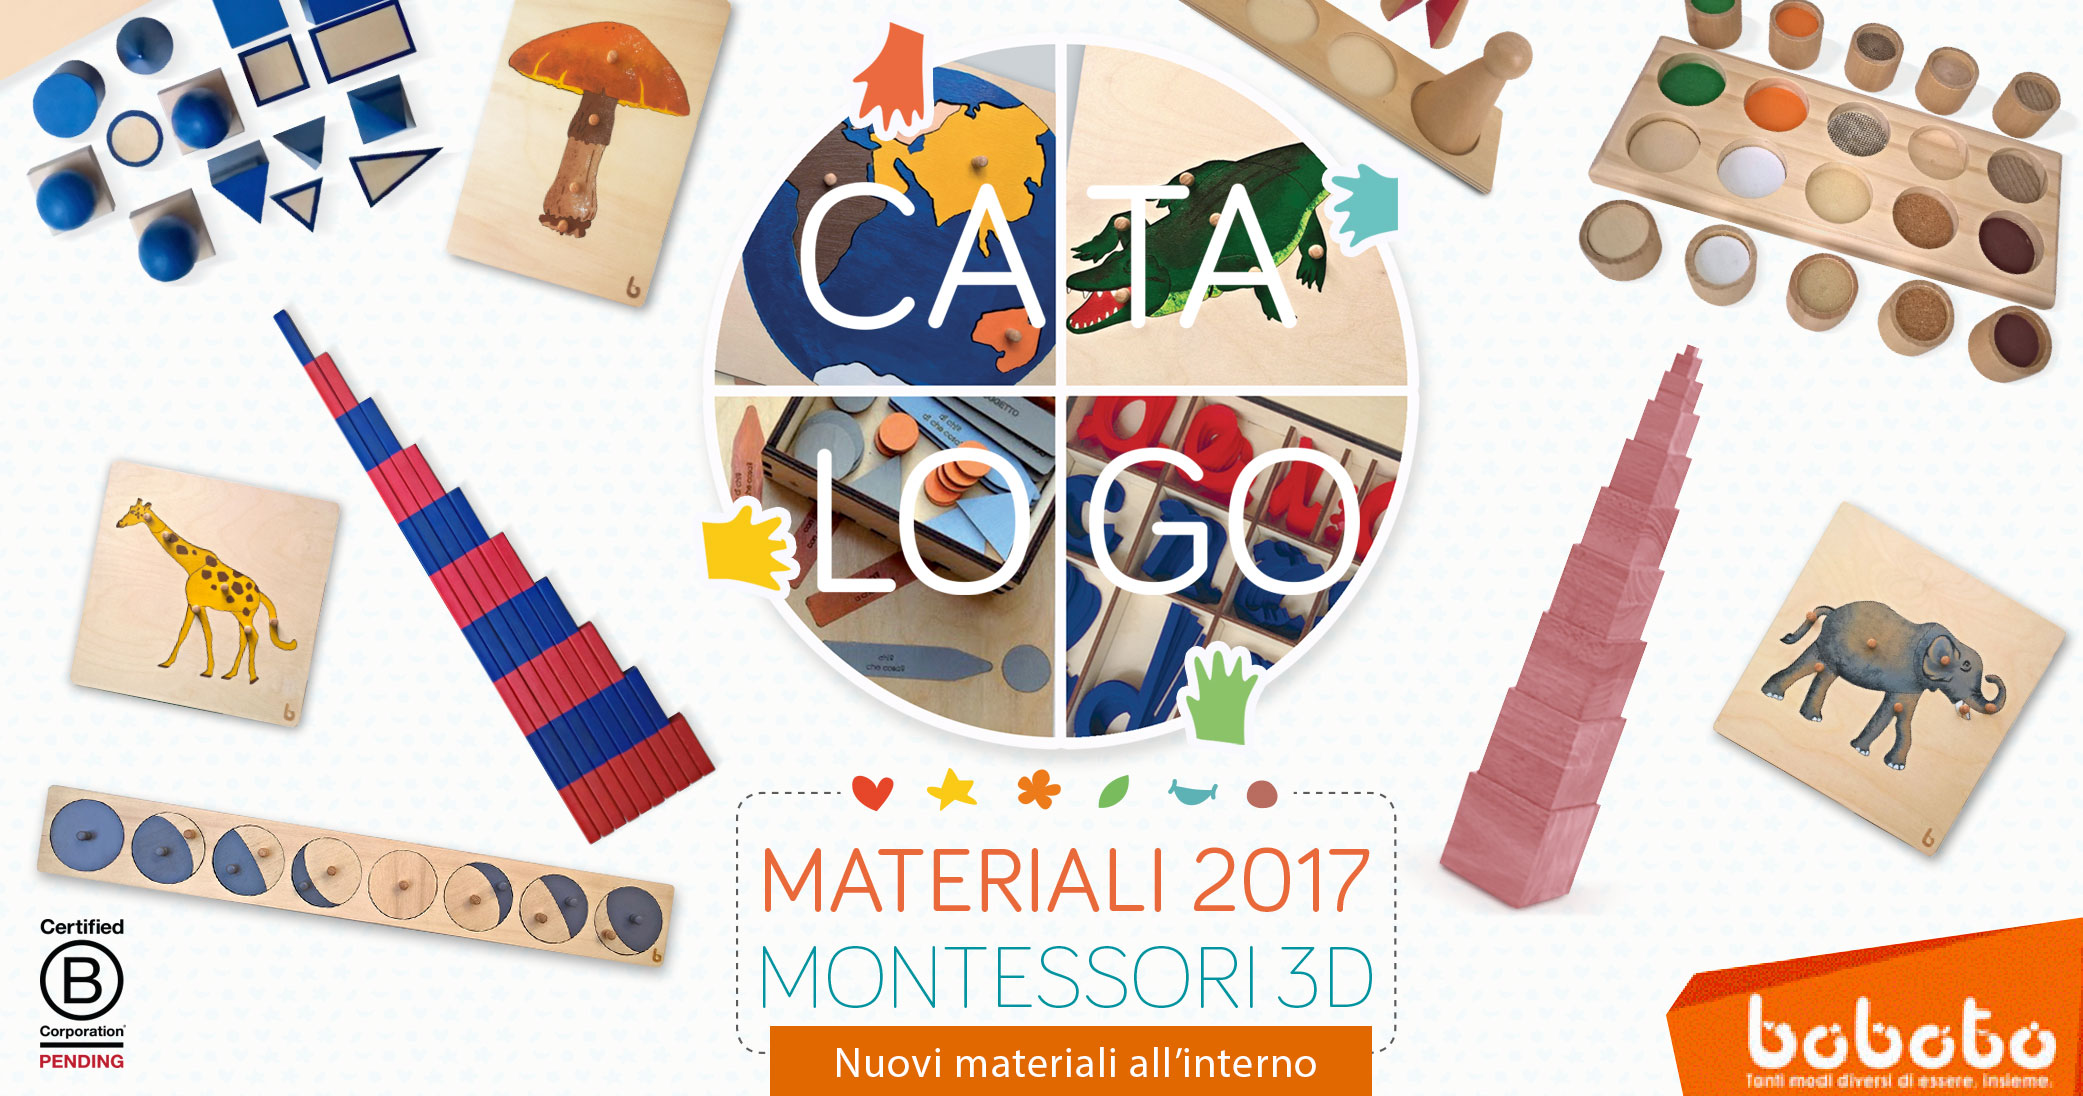 catalogo MONTESSORI 3D 2017